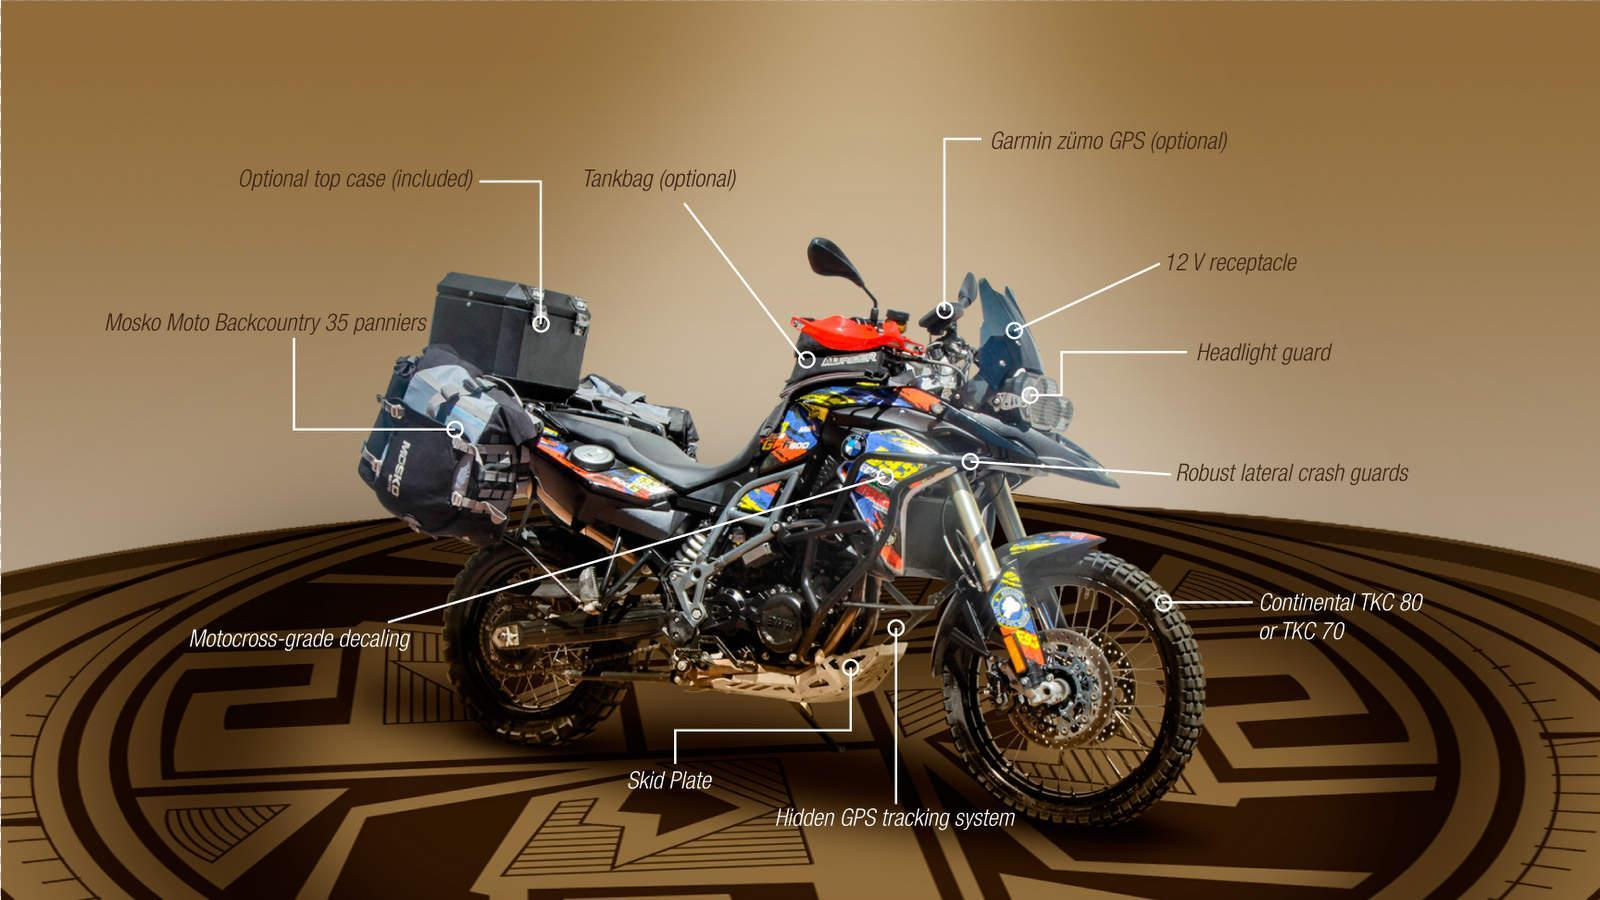 BMW F800GS by Ecuador Freedom Infographic